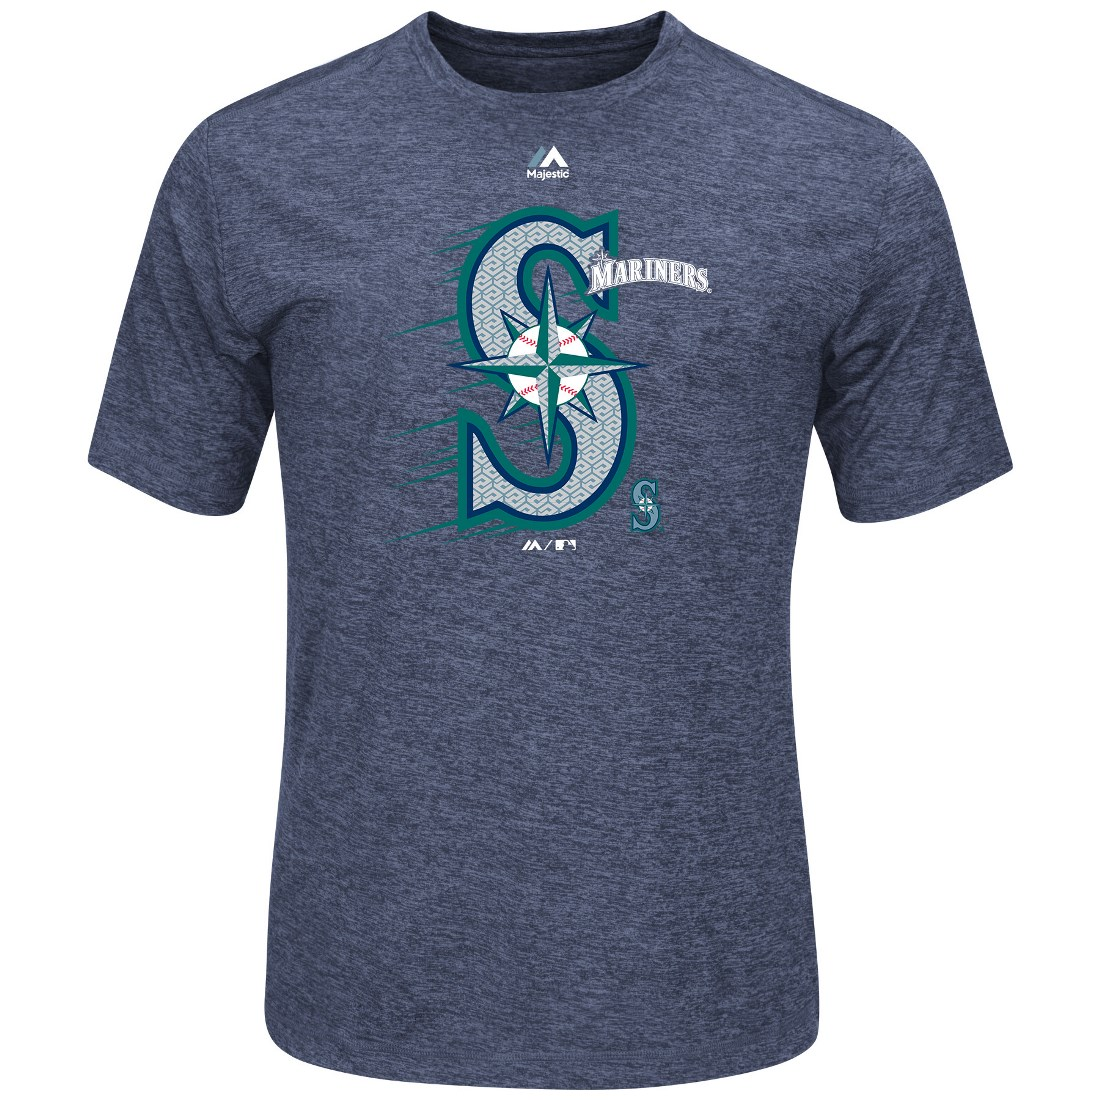 "Seattle Mariners Majestic MLB ""Far Beyond"" Cool Base Heathered Men's T-Shirt by MAJESTIC LSG"